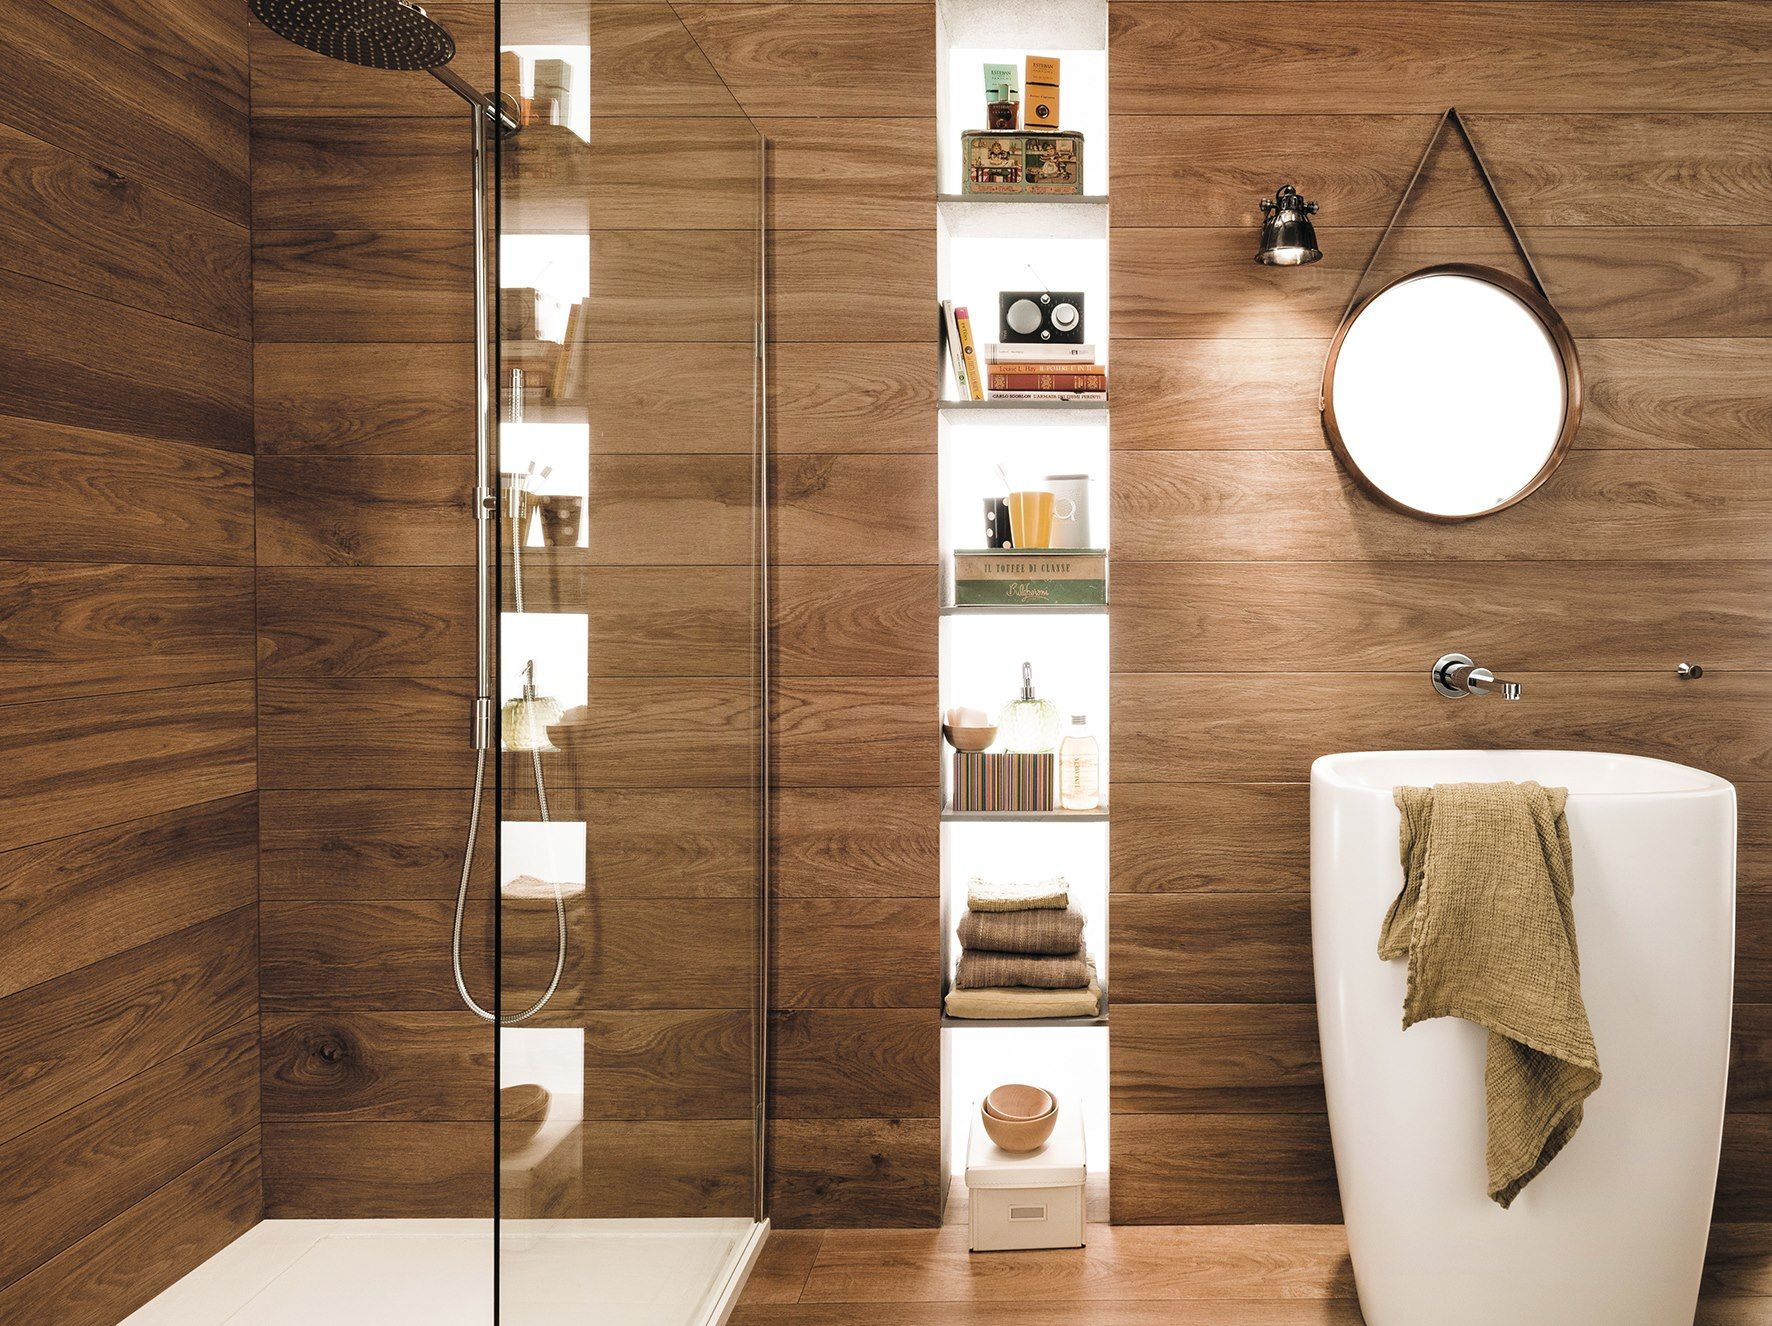 Allways cabin contemporary bathroom perth by ceramo tiles - Mirage Signature Havana Timber Look Tile Available At Ceramo